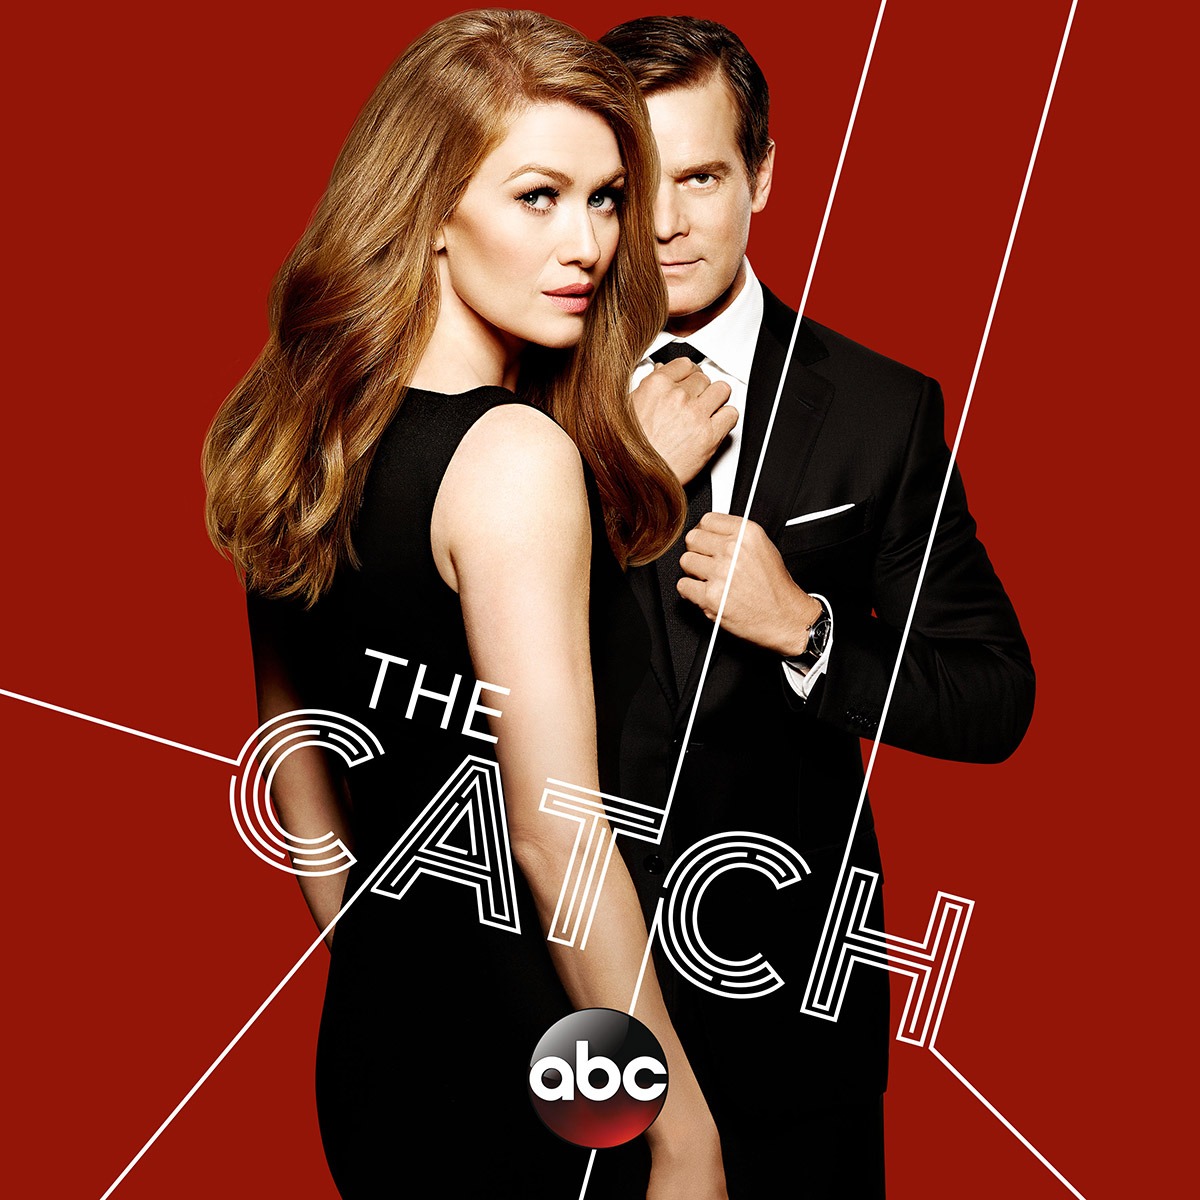 the catch abc promos television promos. Black Bedroom Furniture Sets. Home Design Ideas